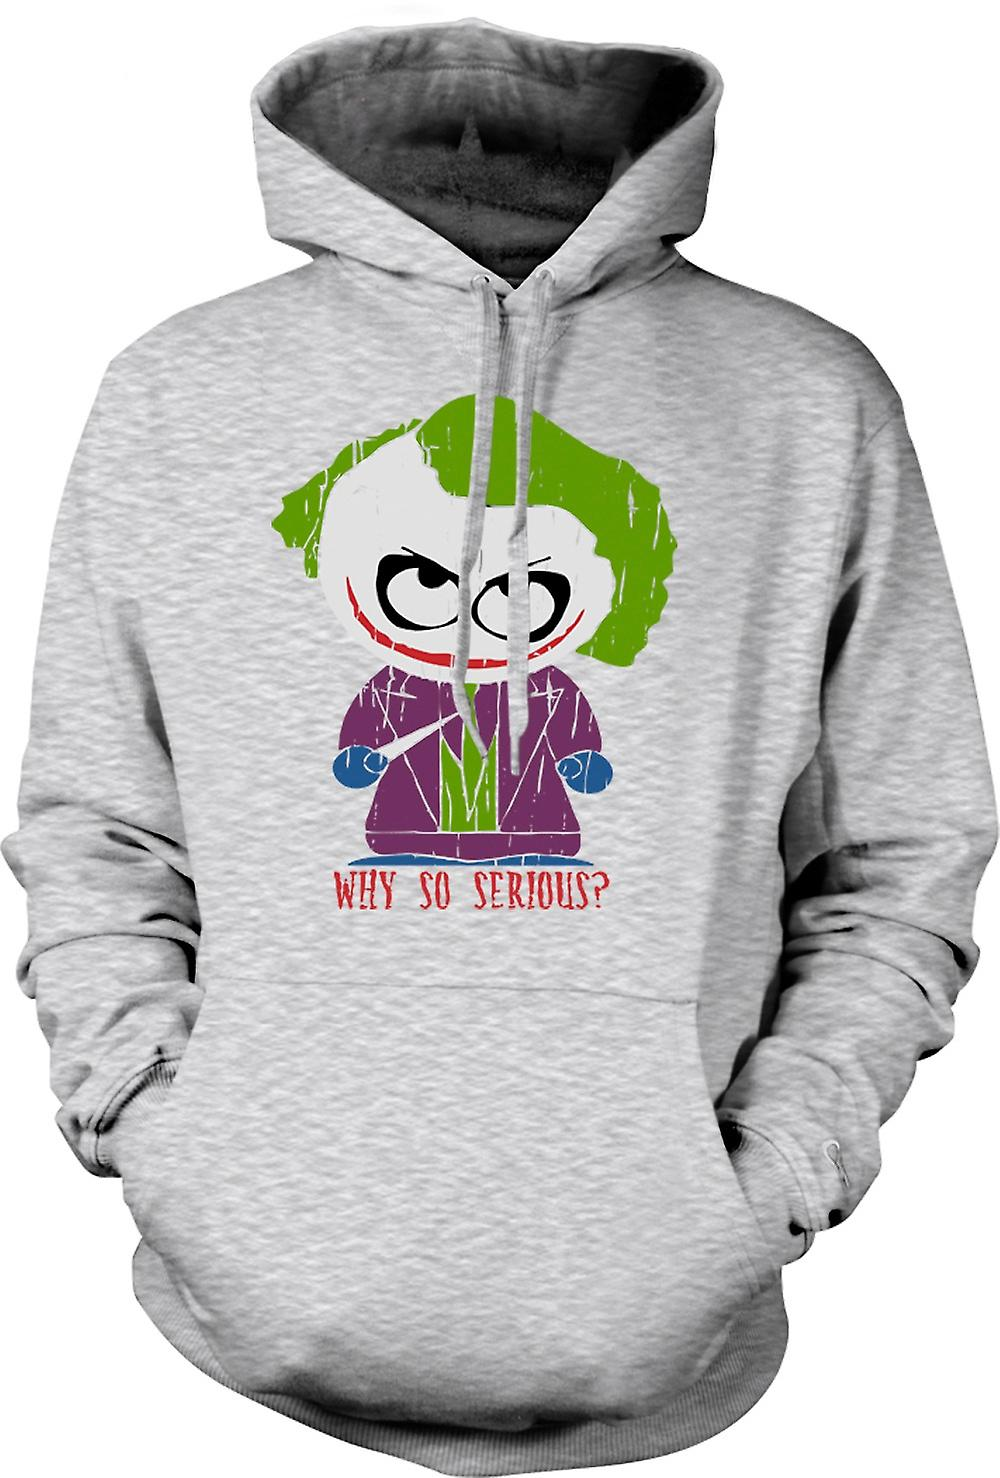 Mens Hoodie - Cute Joker - Why So Serious